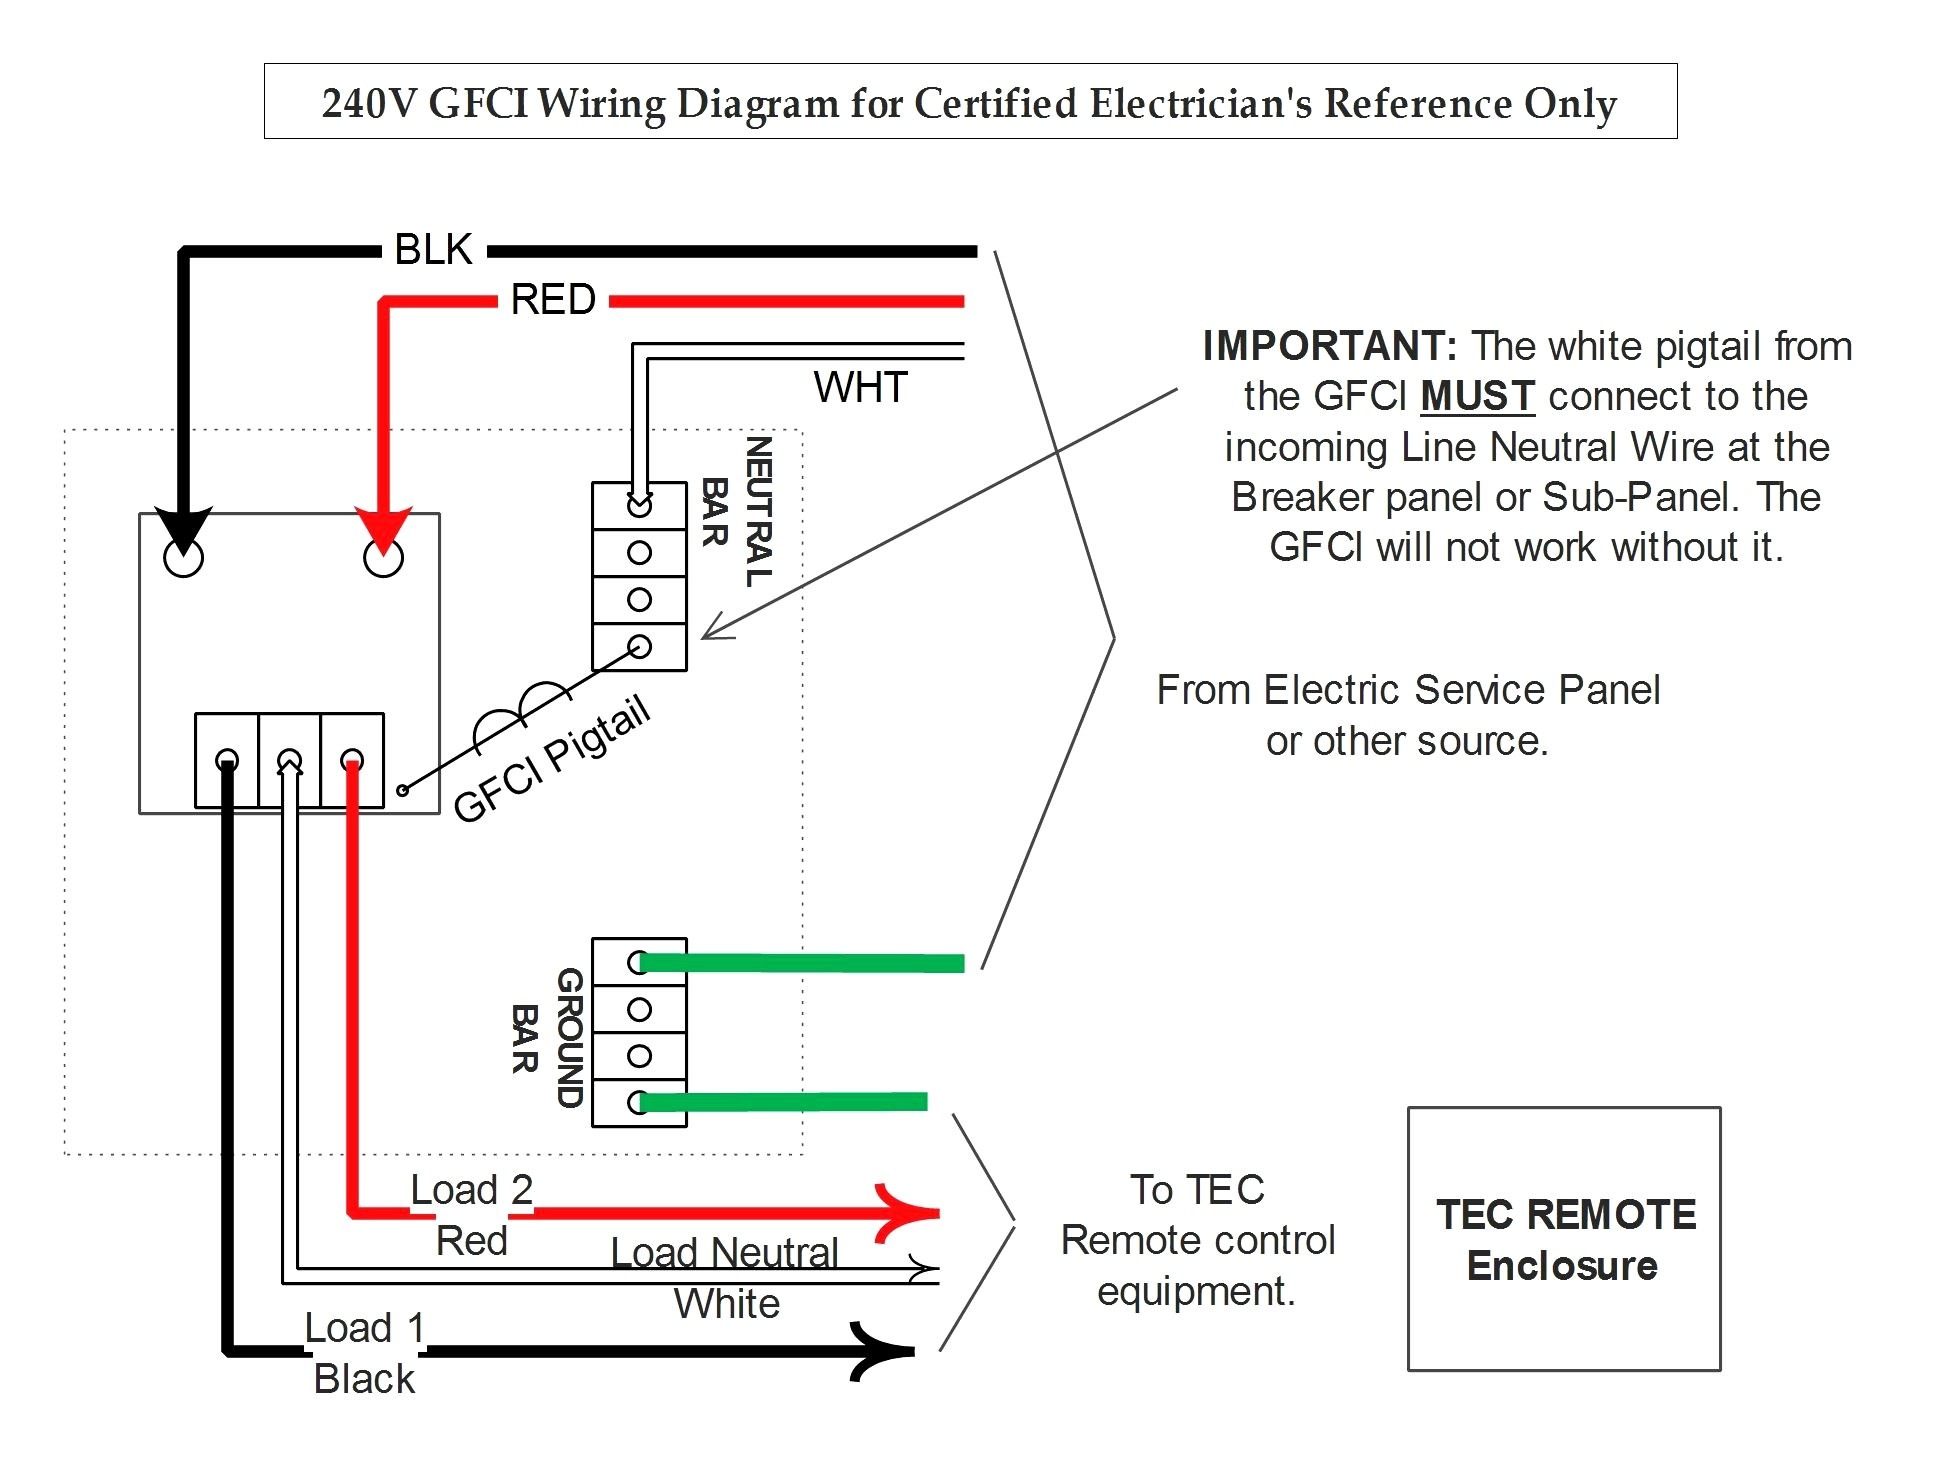 Switch Boat Diagram Wiring Lift Bbremas Electrical Wiring Diagrams Bremas  Switch Wiring Diagram Boat Lift Switch Diagrams